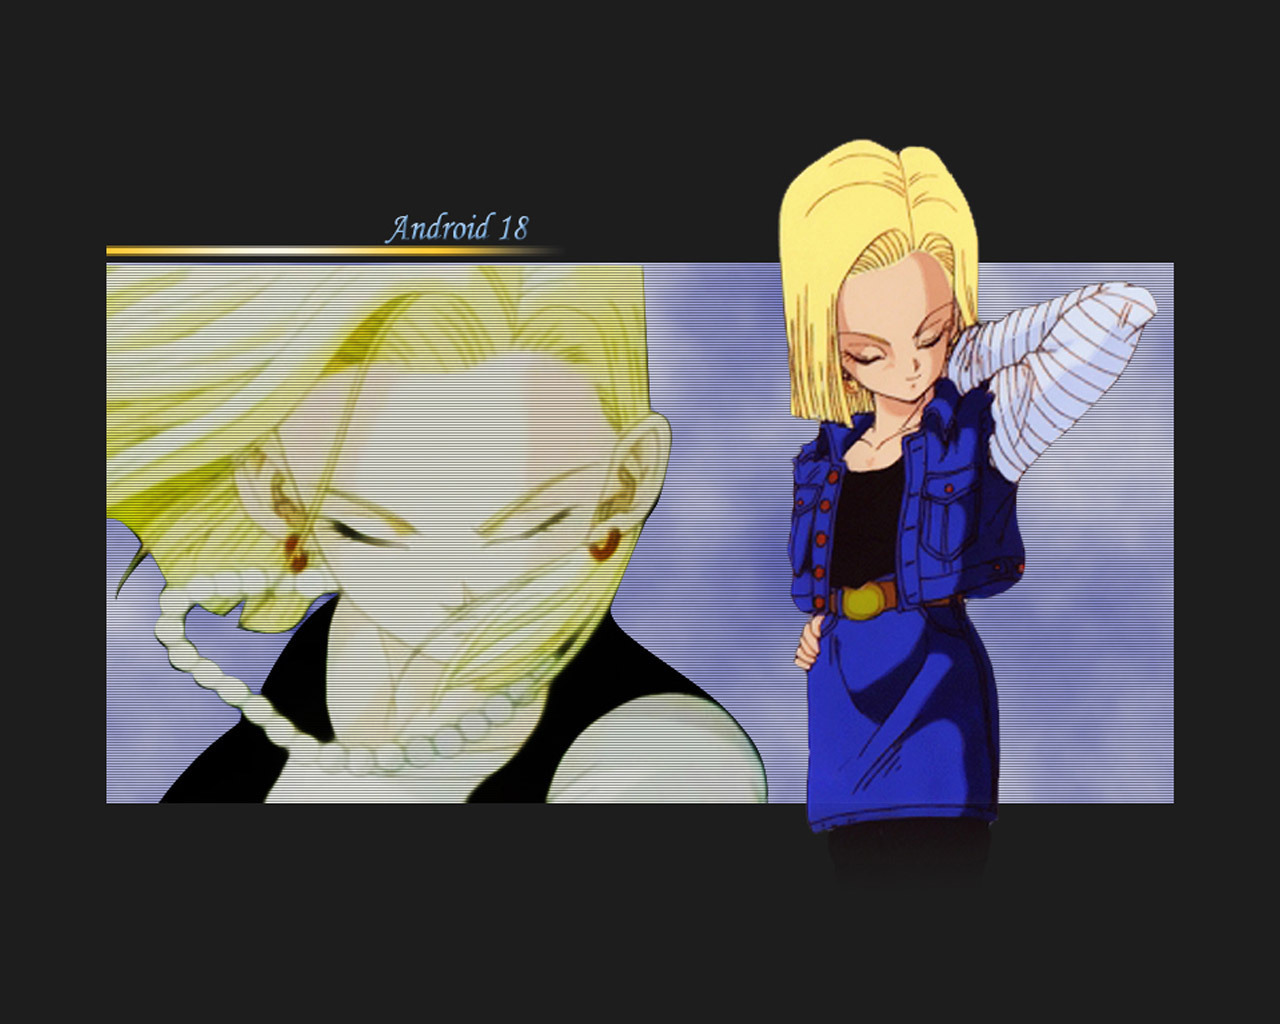 Android 18 Images Android-18 HD Wallpaper And Background